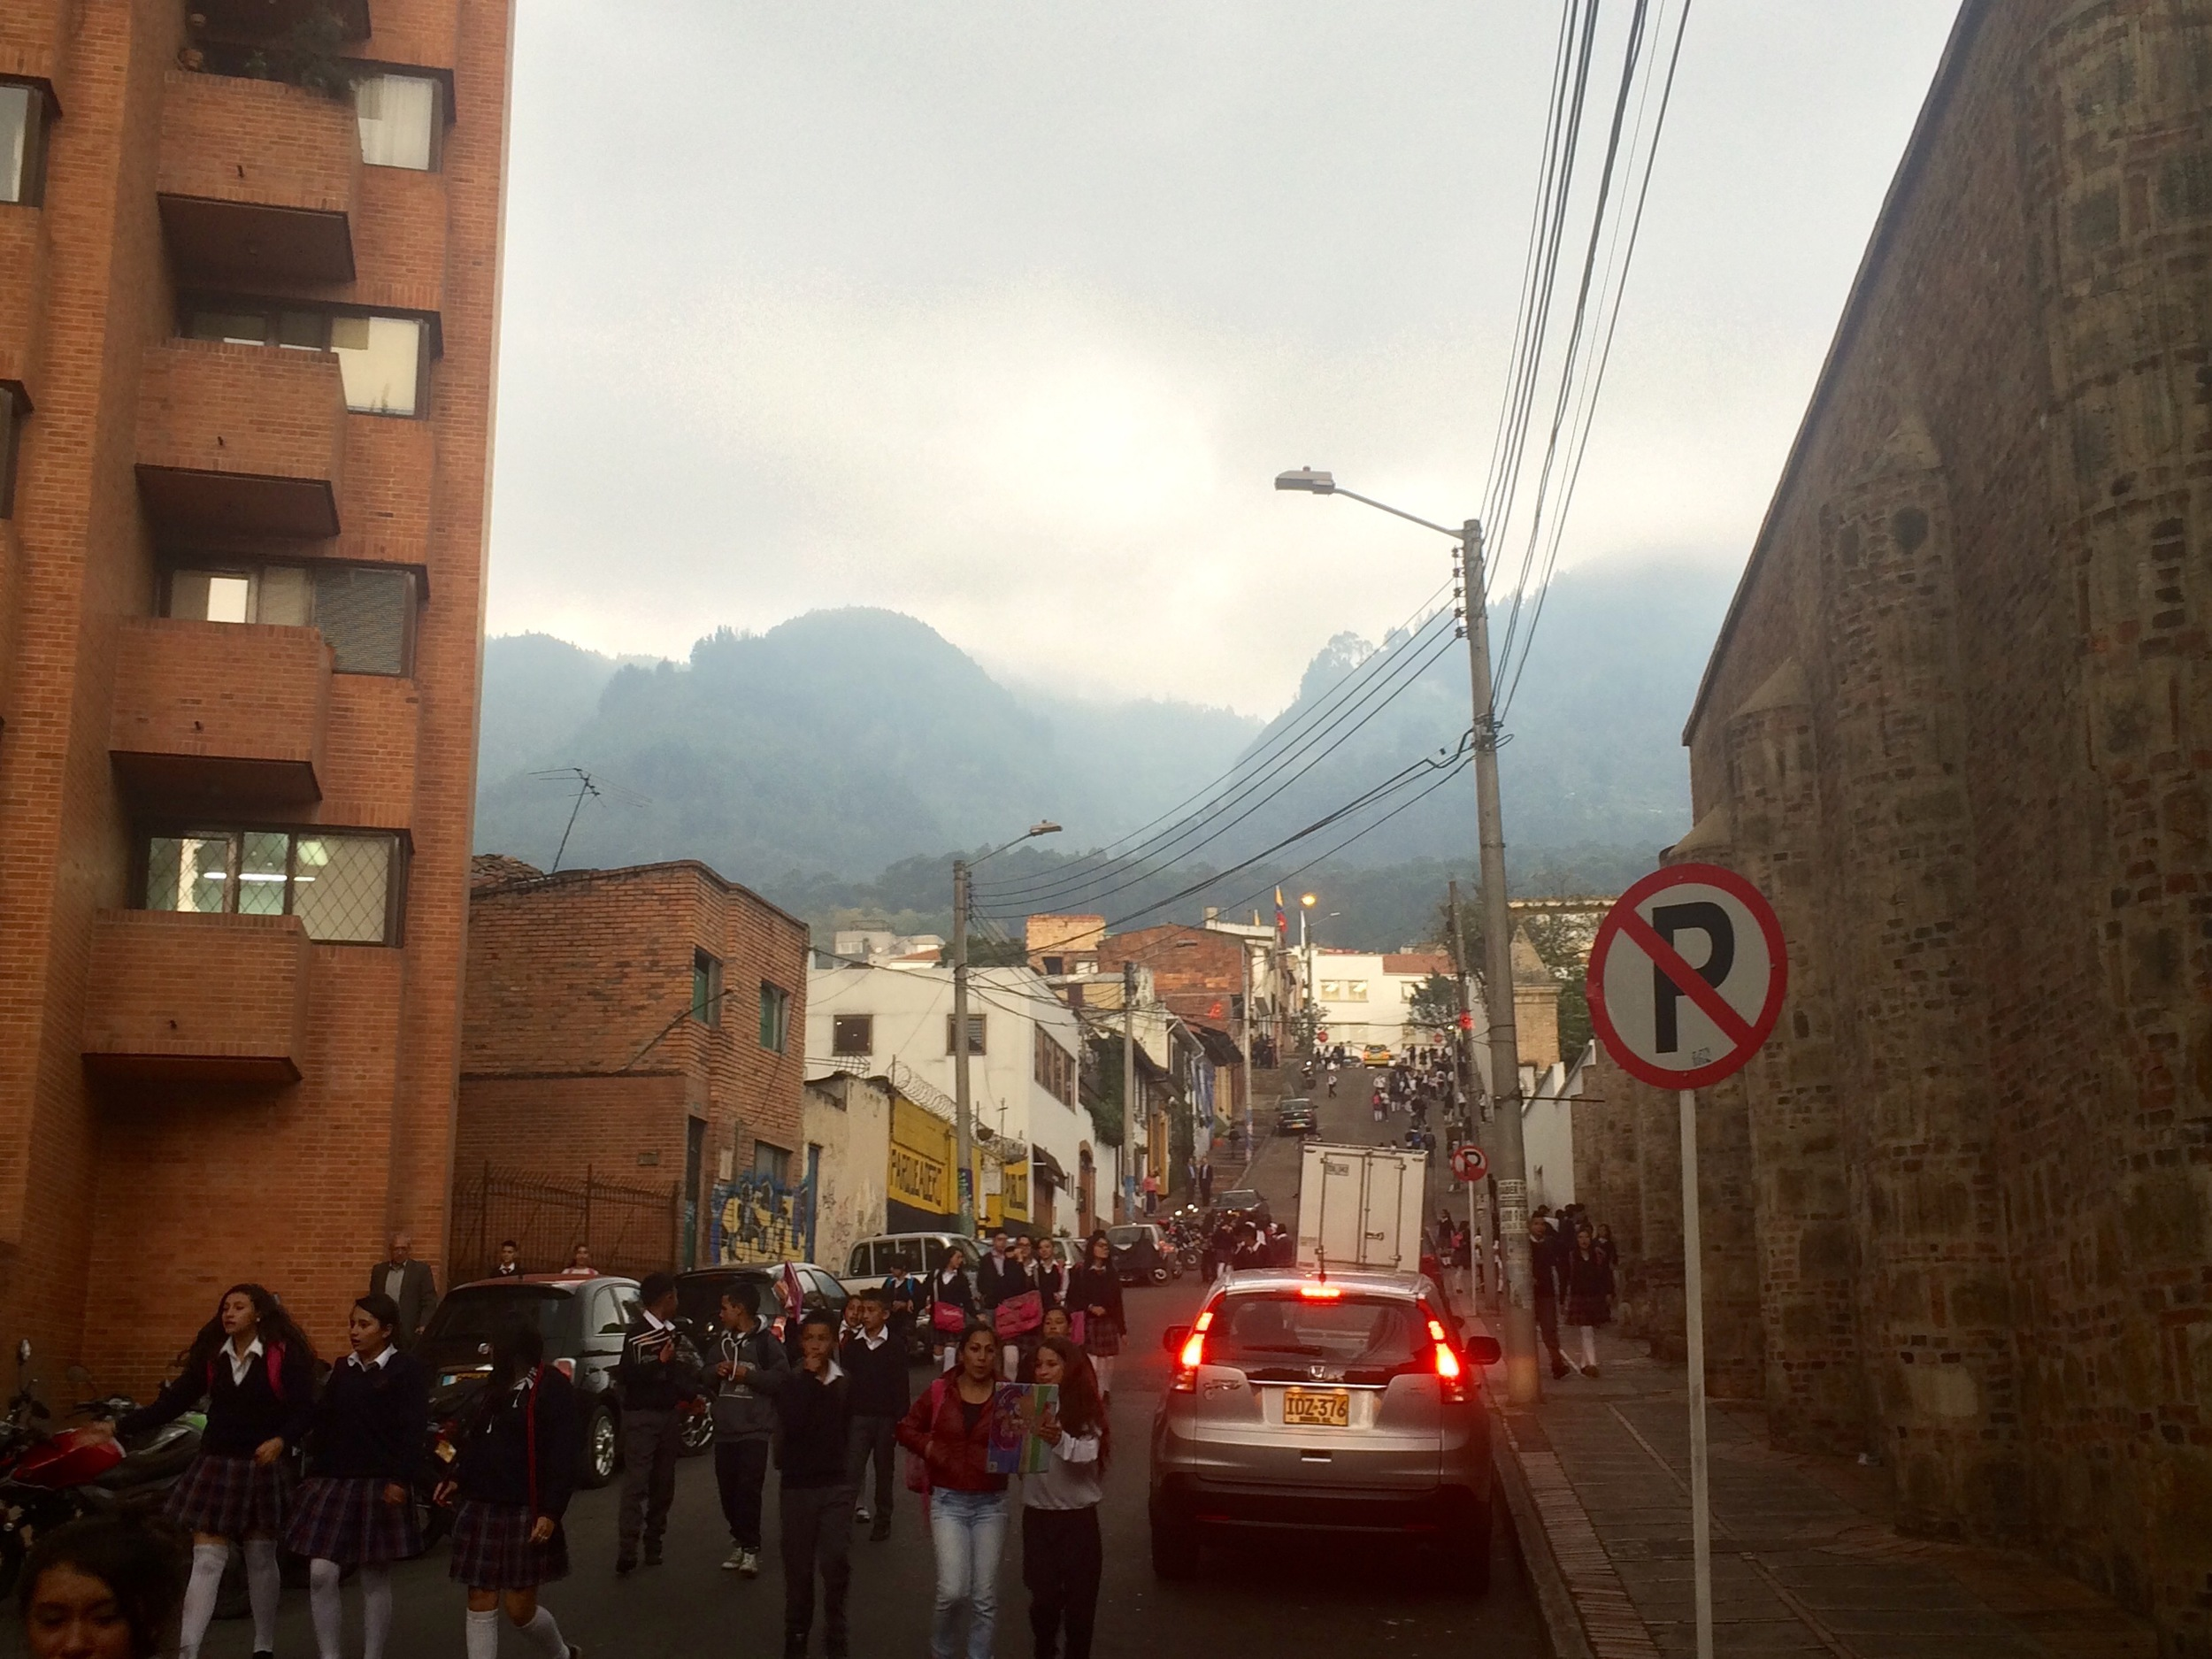 After class in Bogotá.